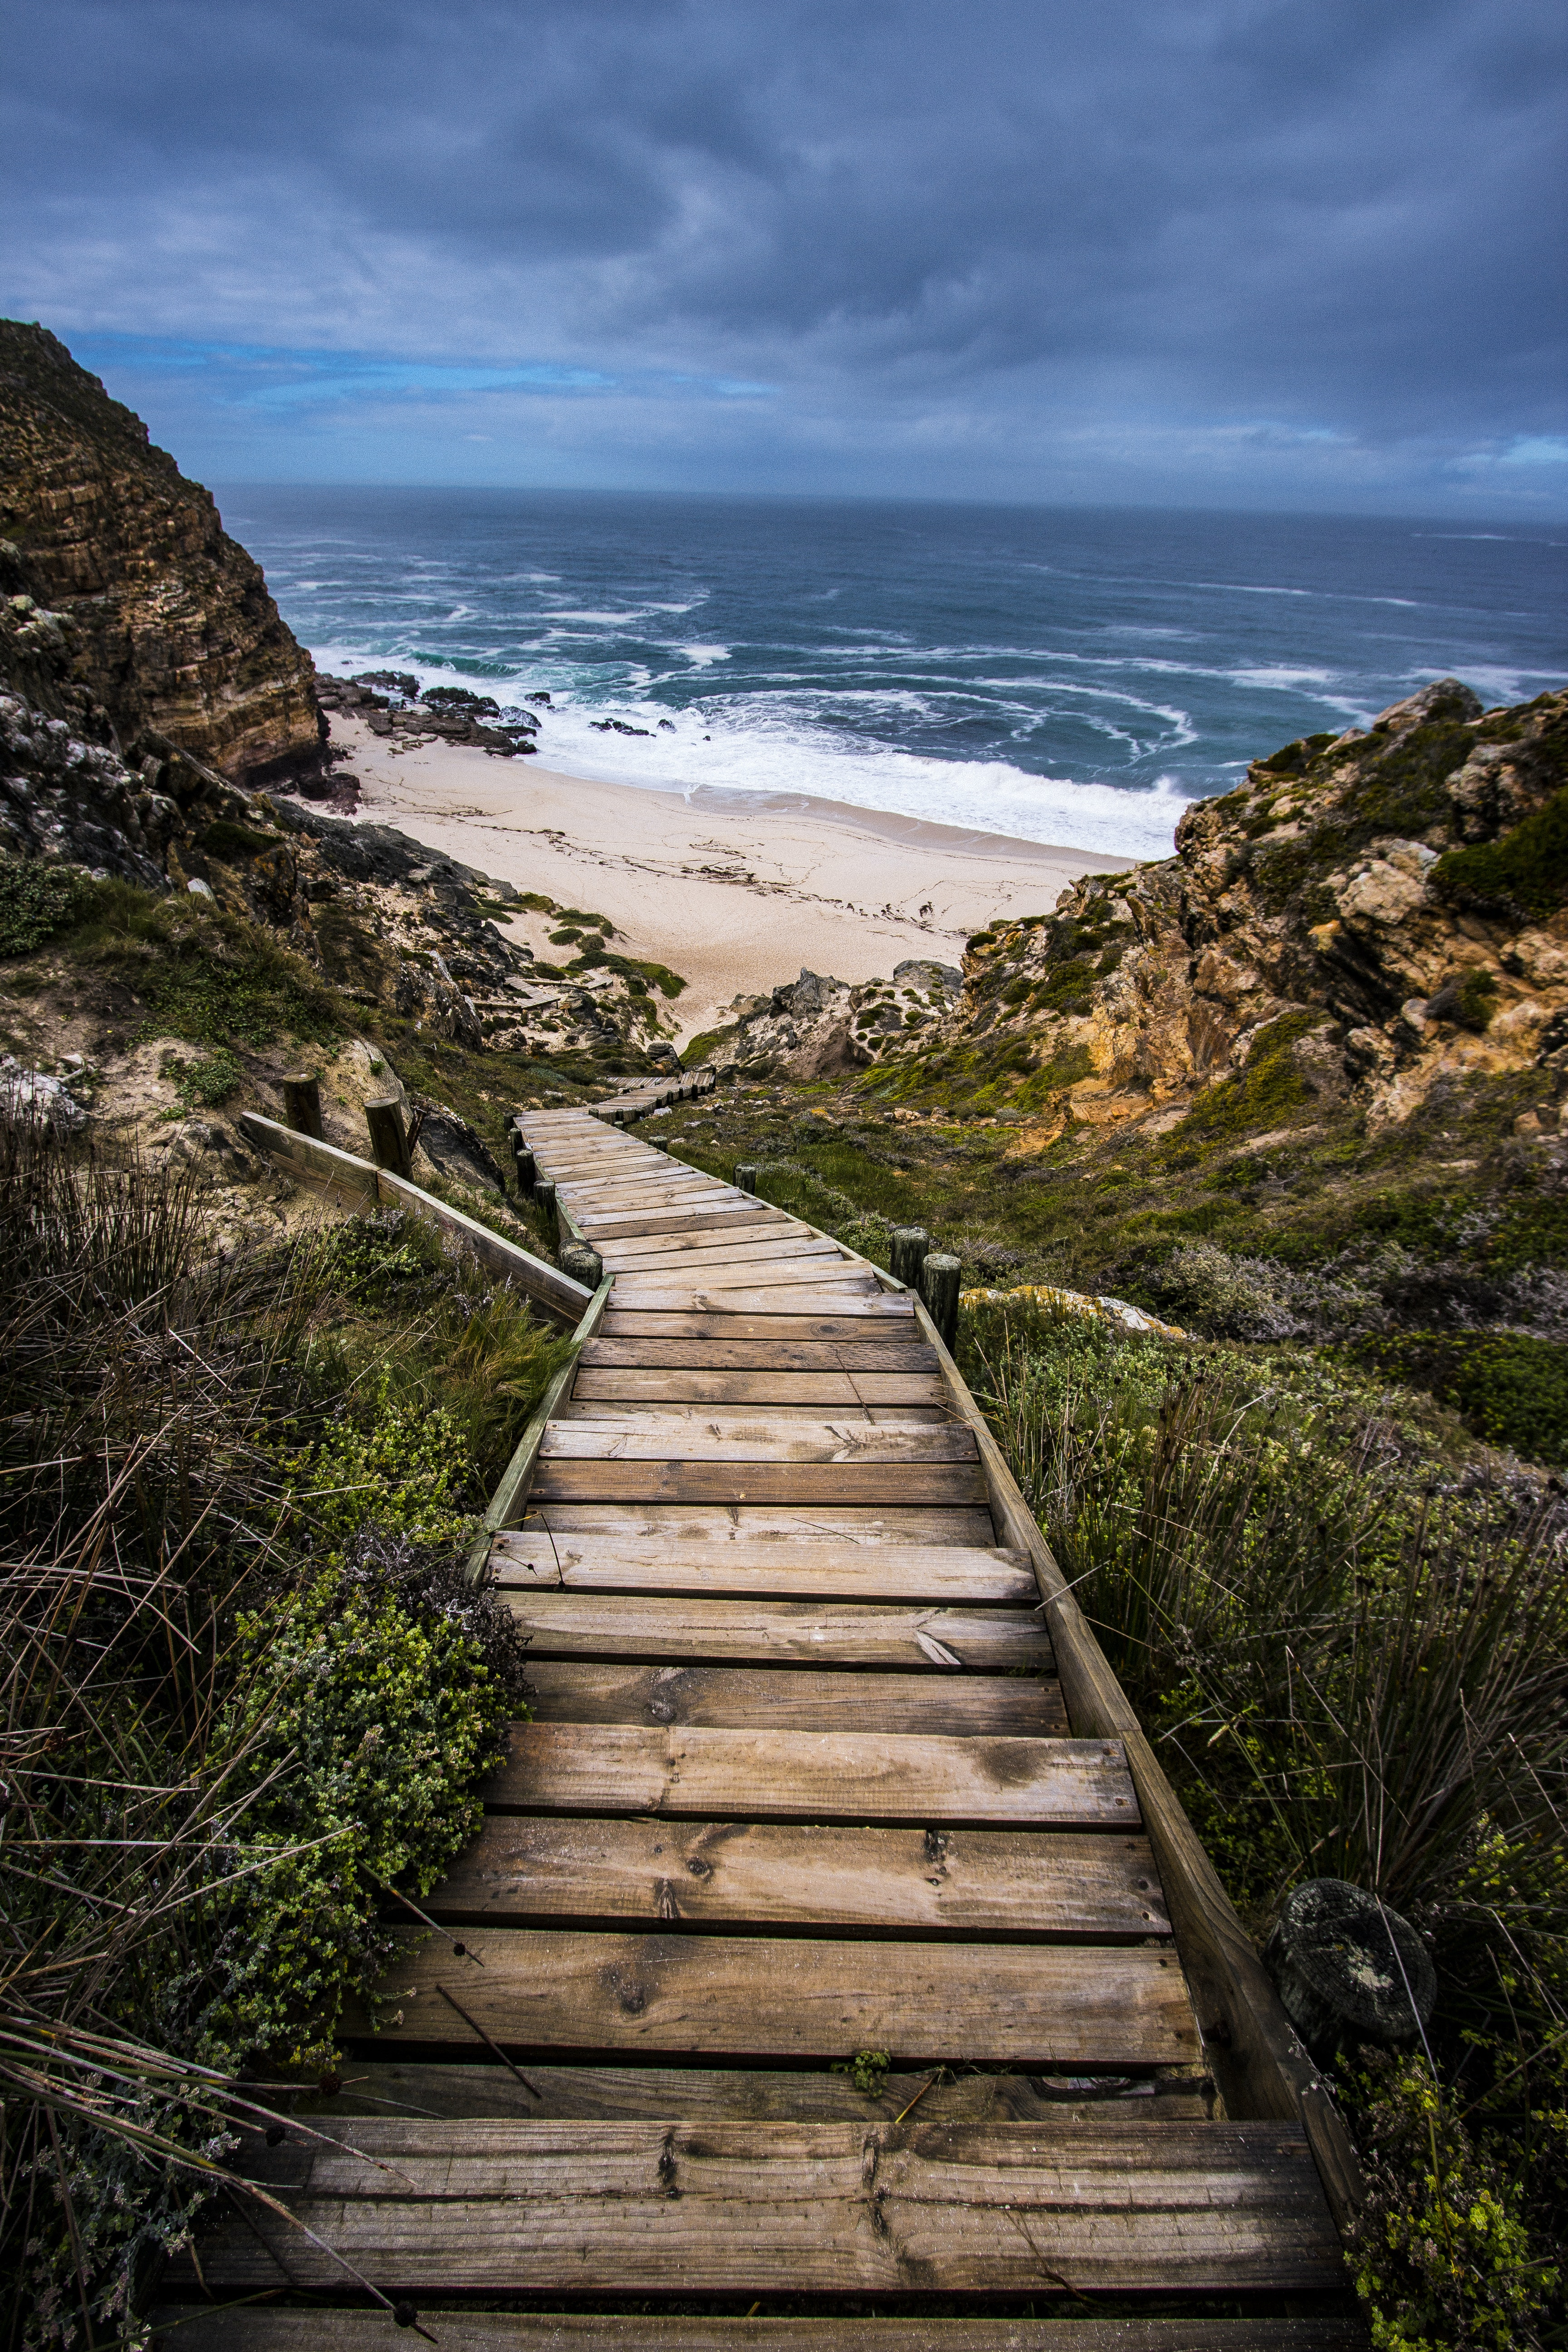 Attrayant Wooden Stairs To Beach · Free Stock Photo